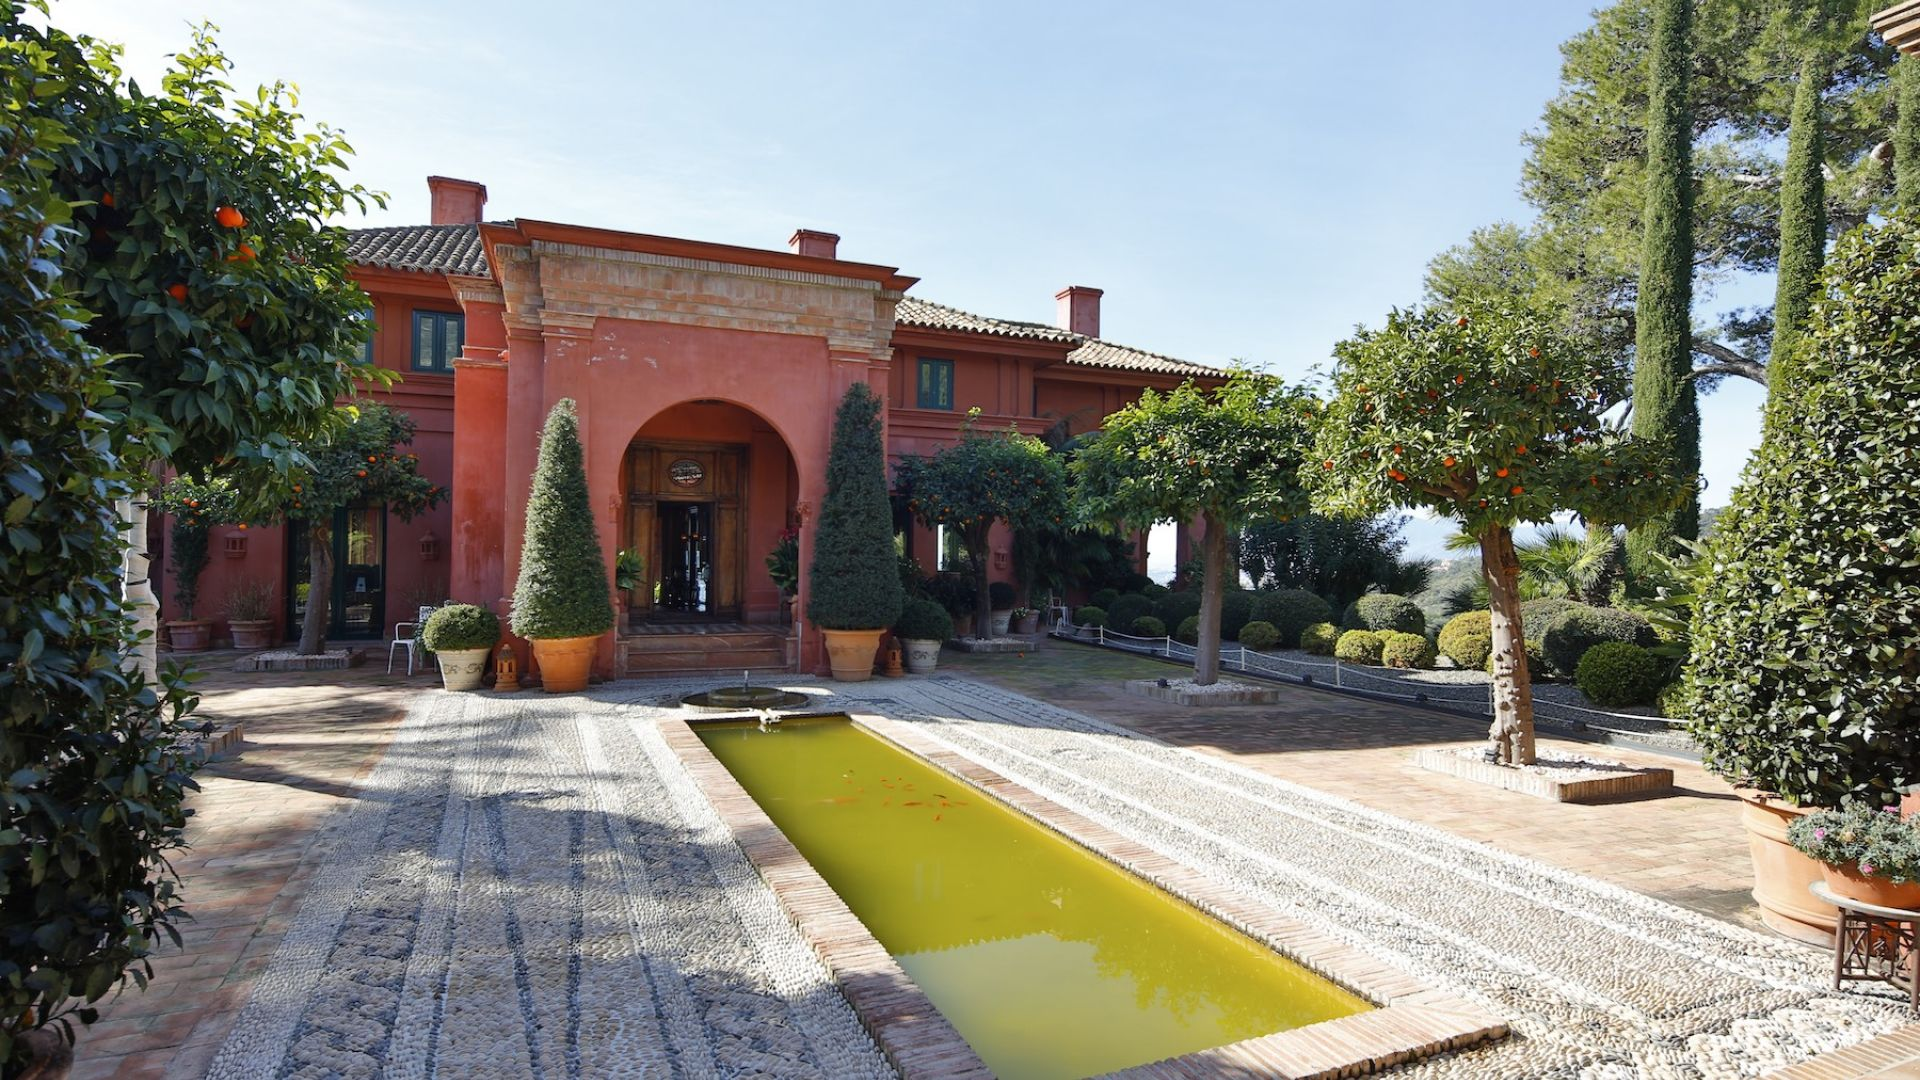 一戸建て のために 売買 アット Magnificent residence located in the hills above Marbella Marbella, Costa Del Sol 29600 スペイン